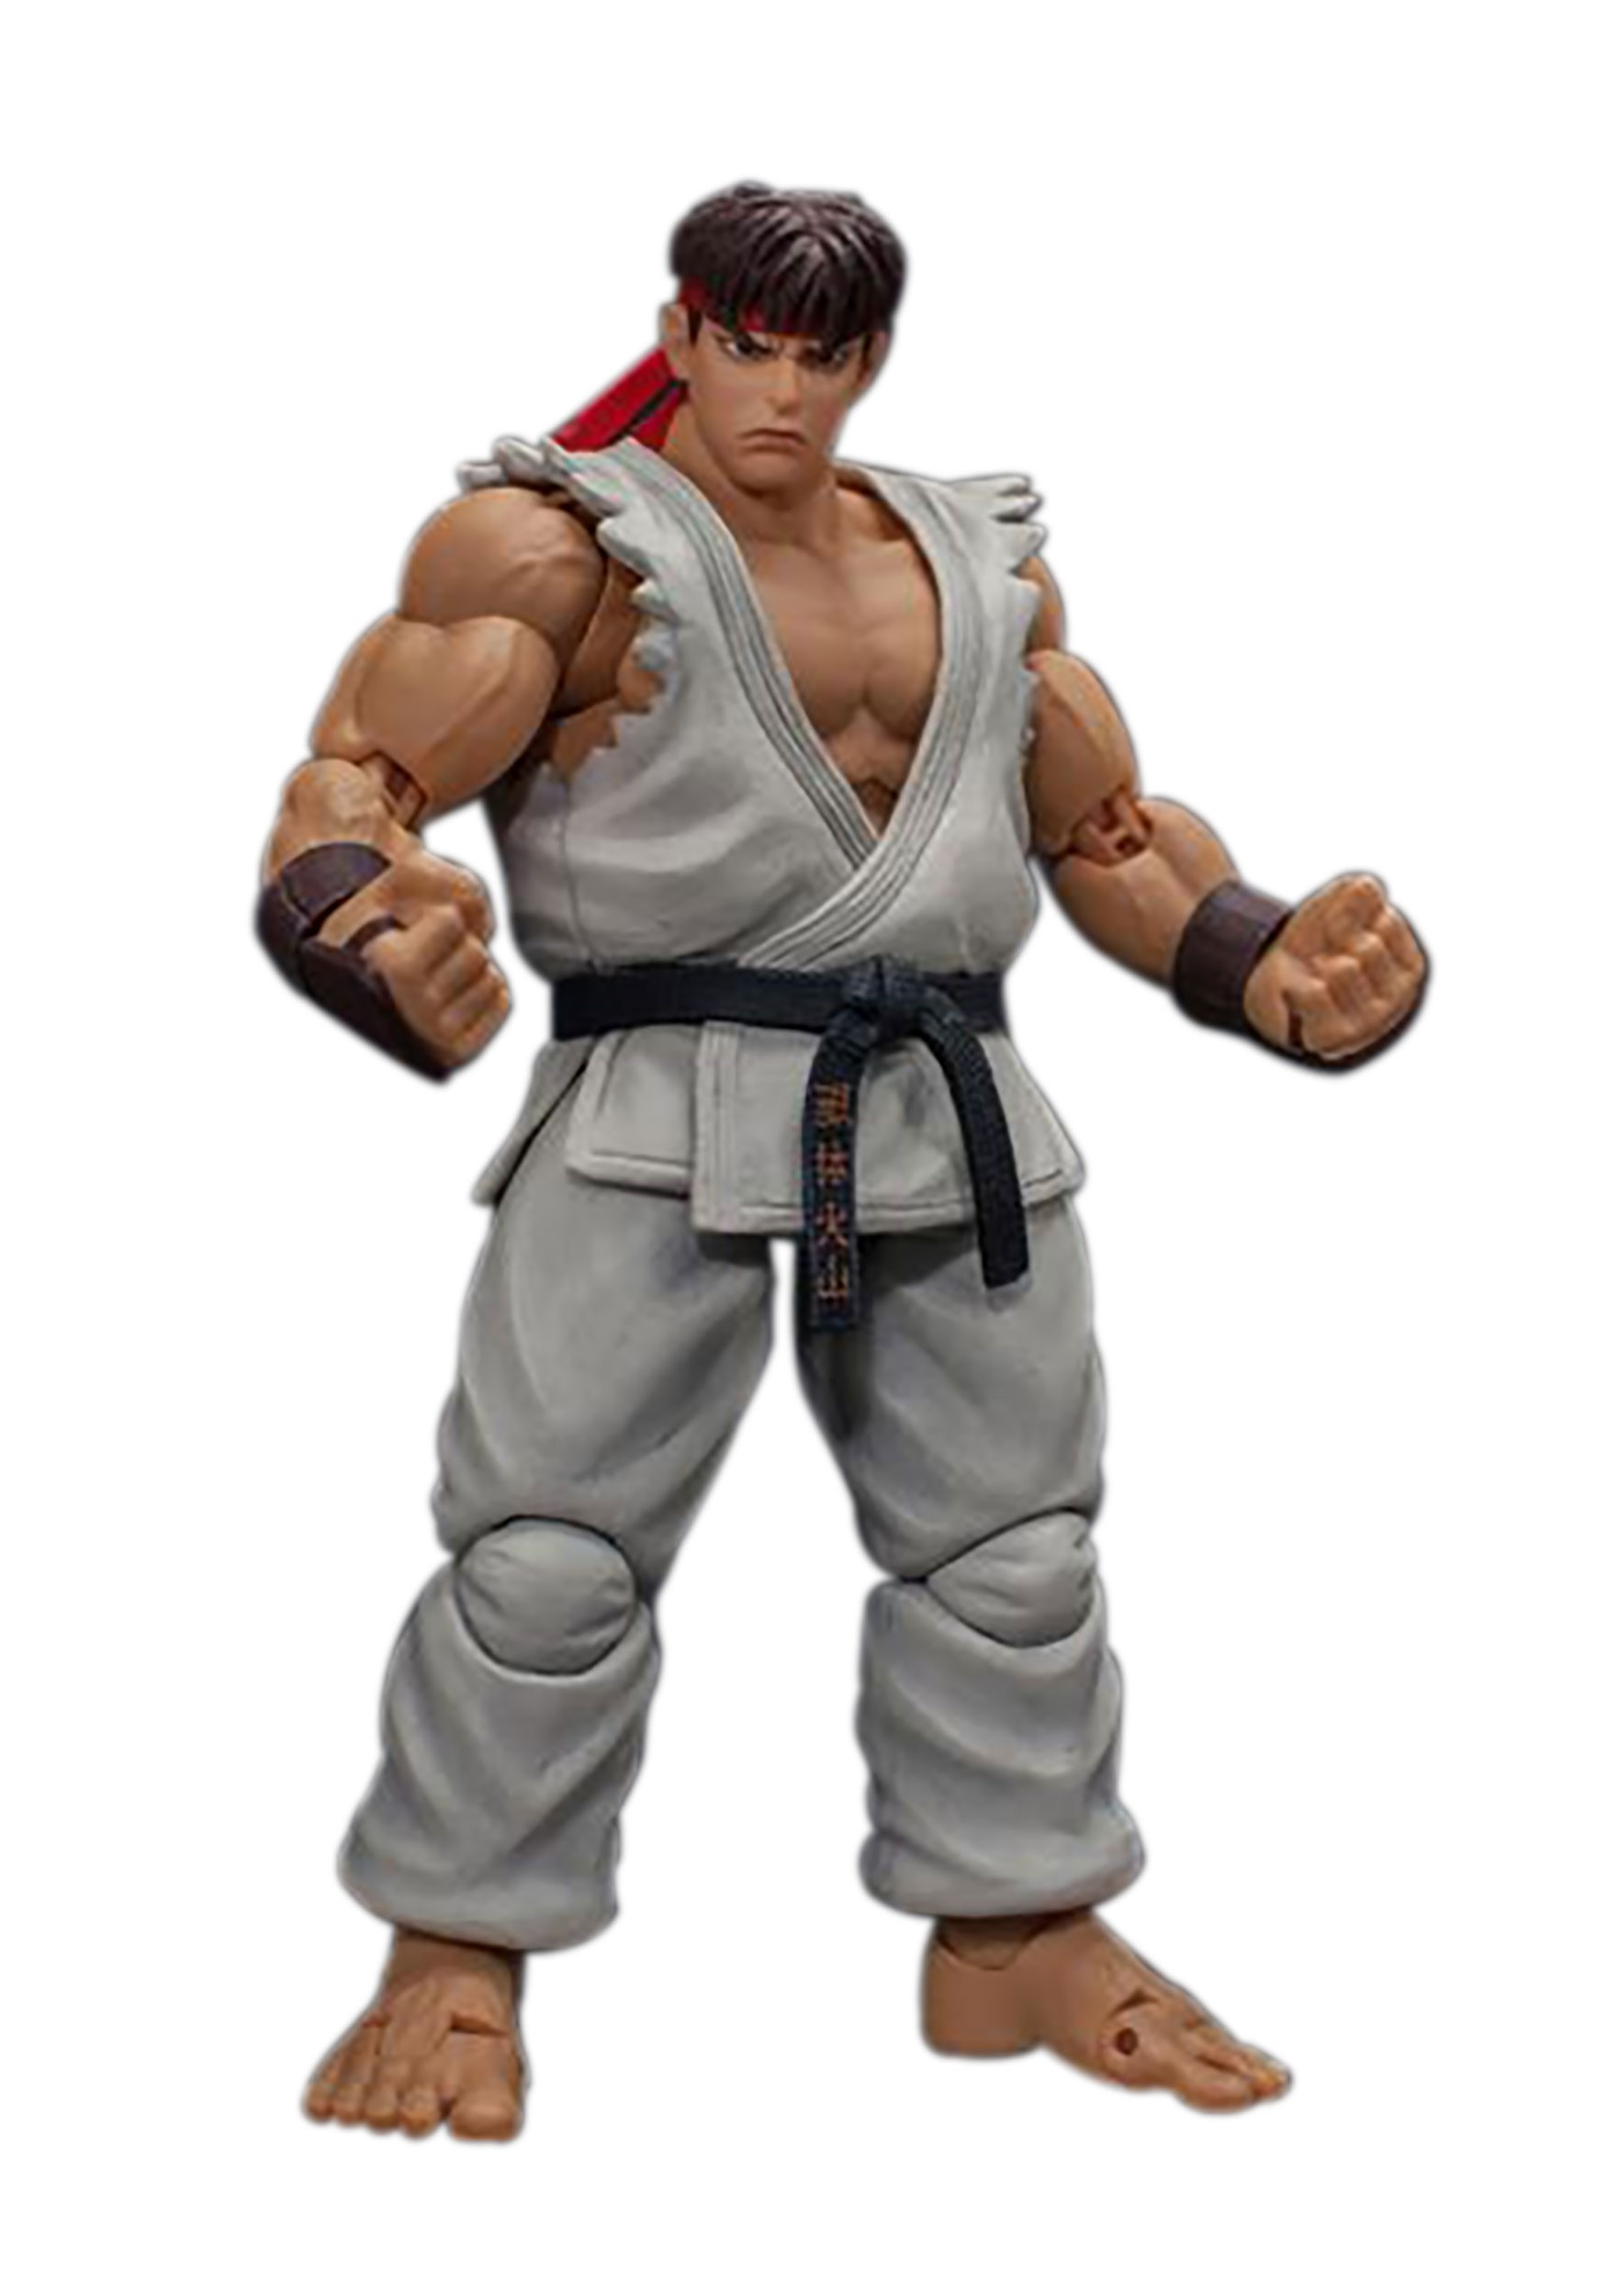 Collectible_Ultra_Street_Fighter_II_Ryu_Action_Figure